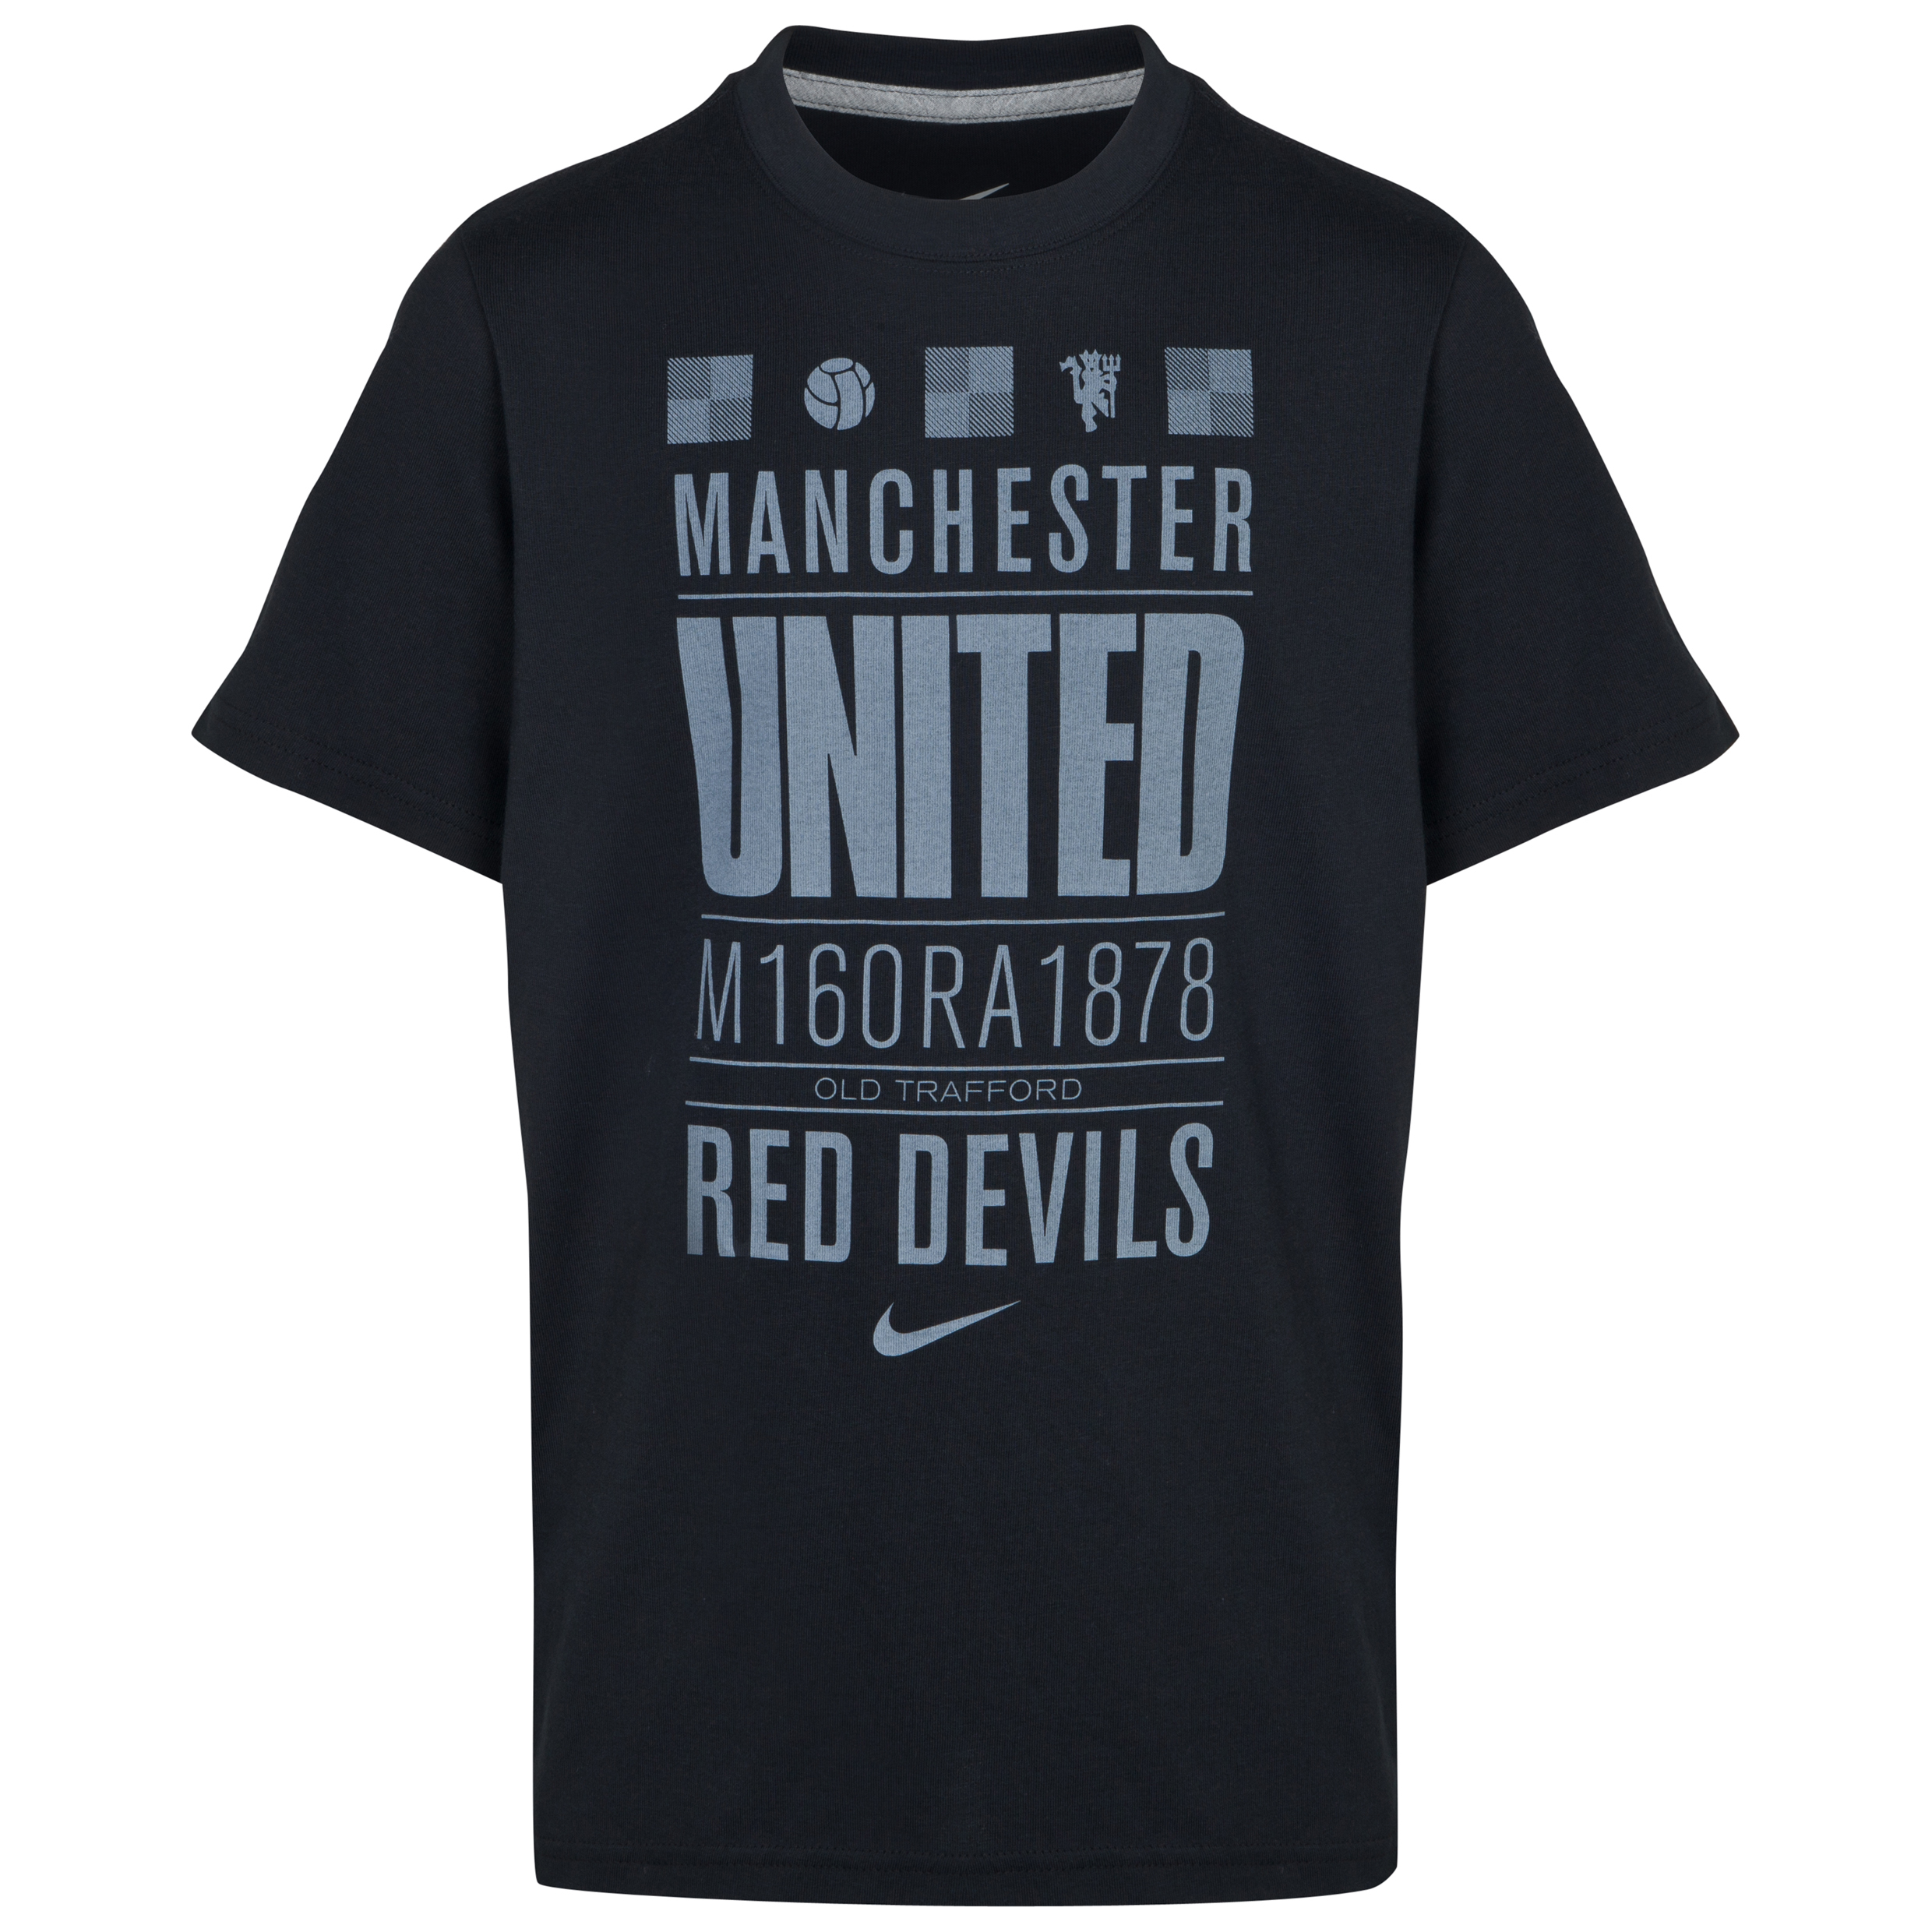 Manchester United Core Plus T-Shirt - Black/Dark Grey Heather - Kids Black